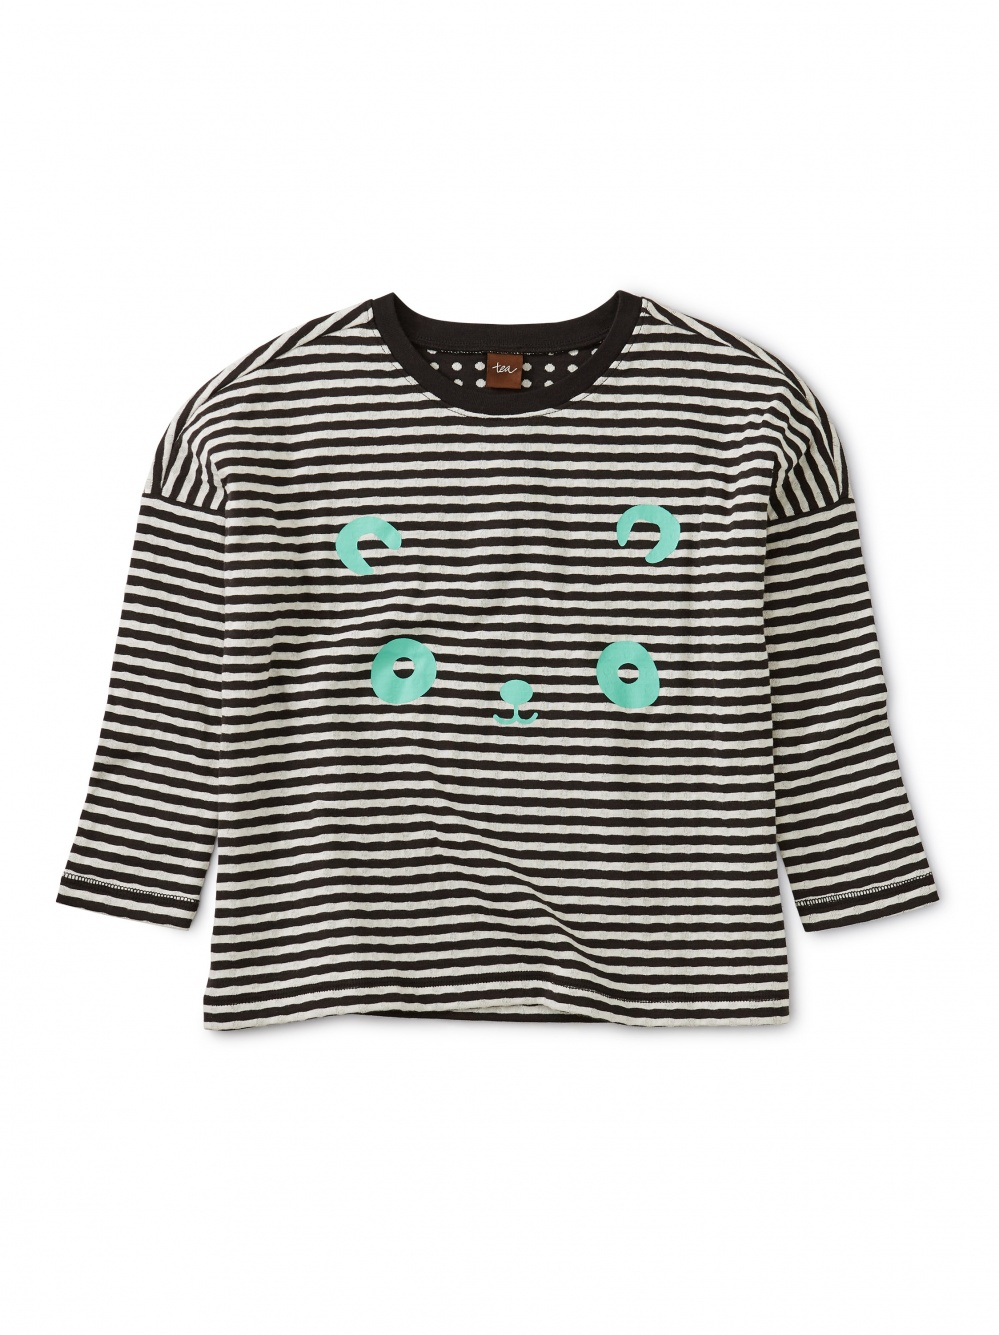 Panda Graphic Double Knit Top